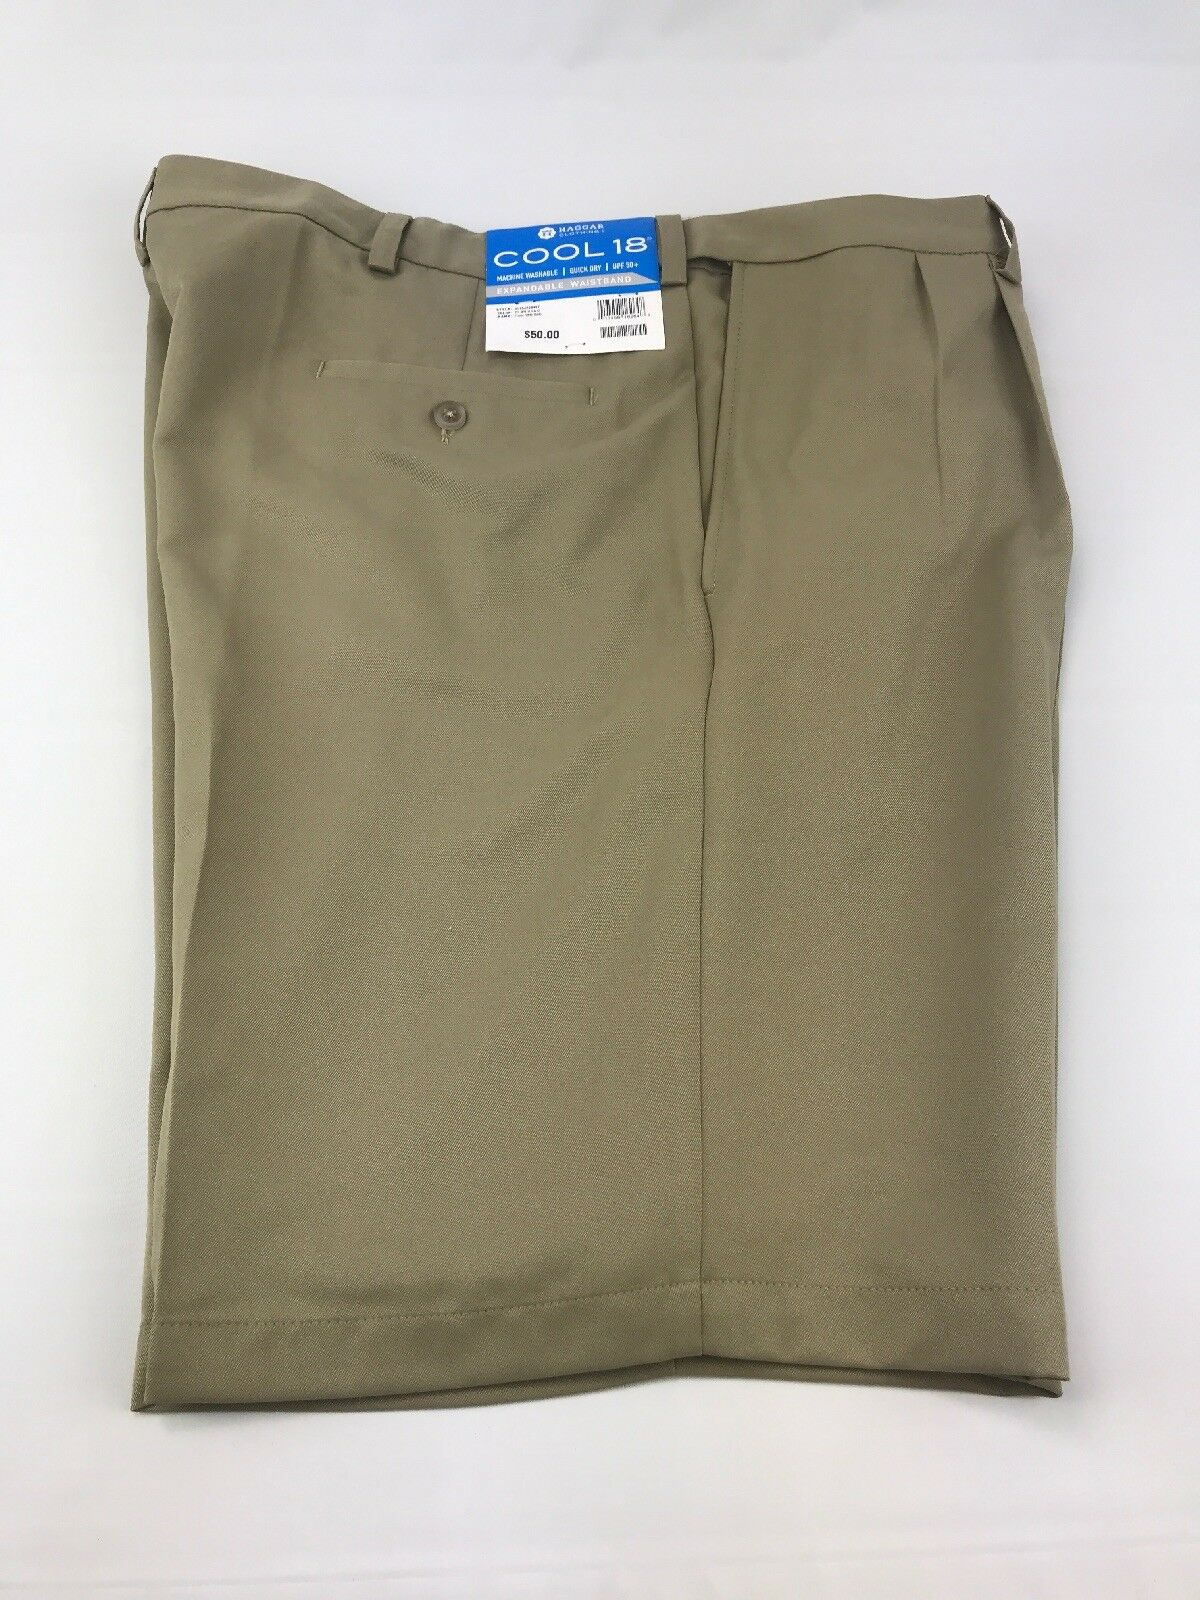 1cde18d690 ... UPC 017458162648 product image for Mens Haggar Cool 18 Pleated Stretch  Waist Khaki Beige Golf Shorts